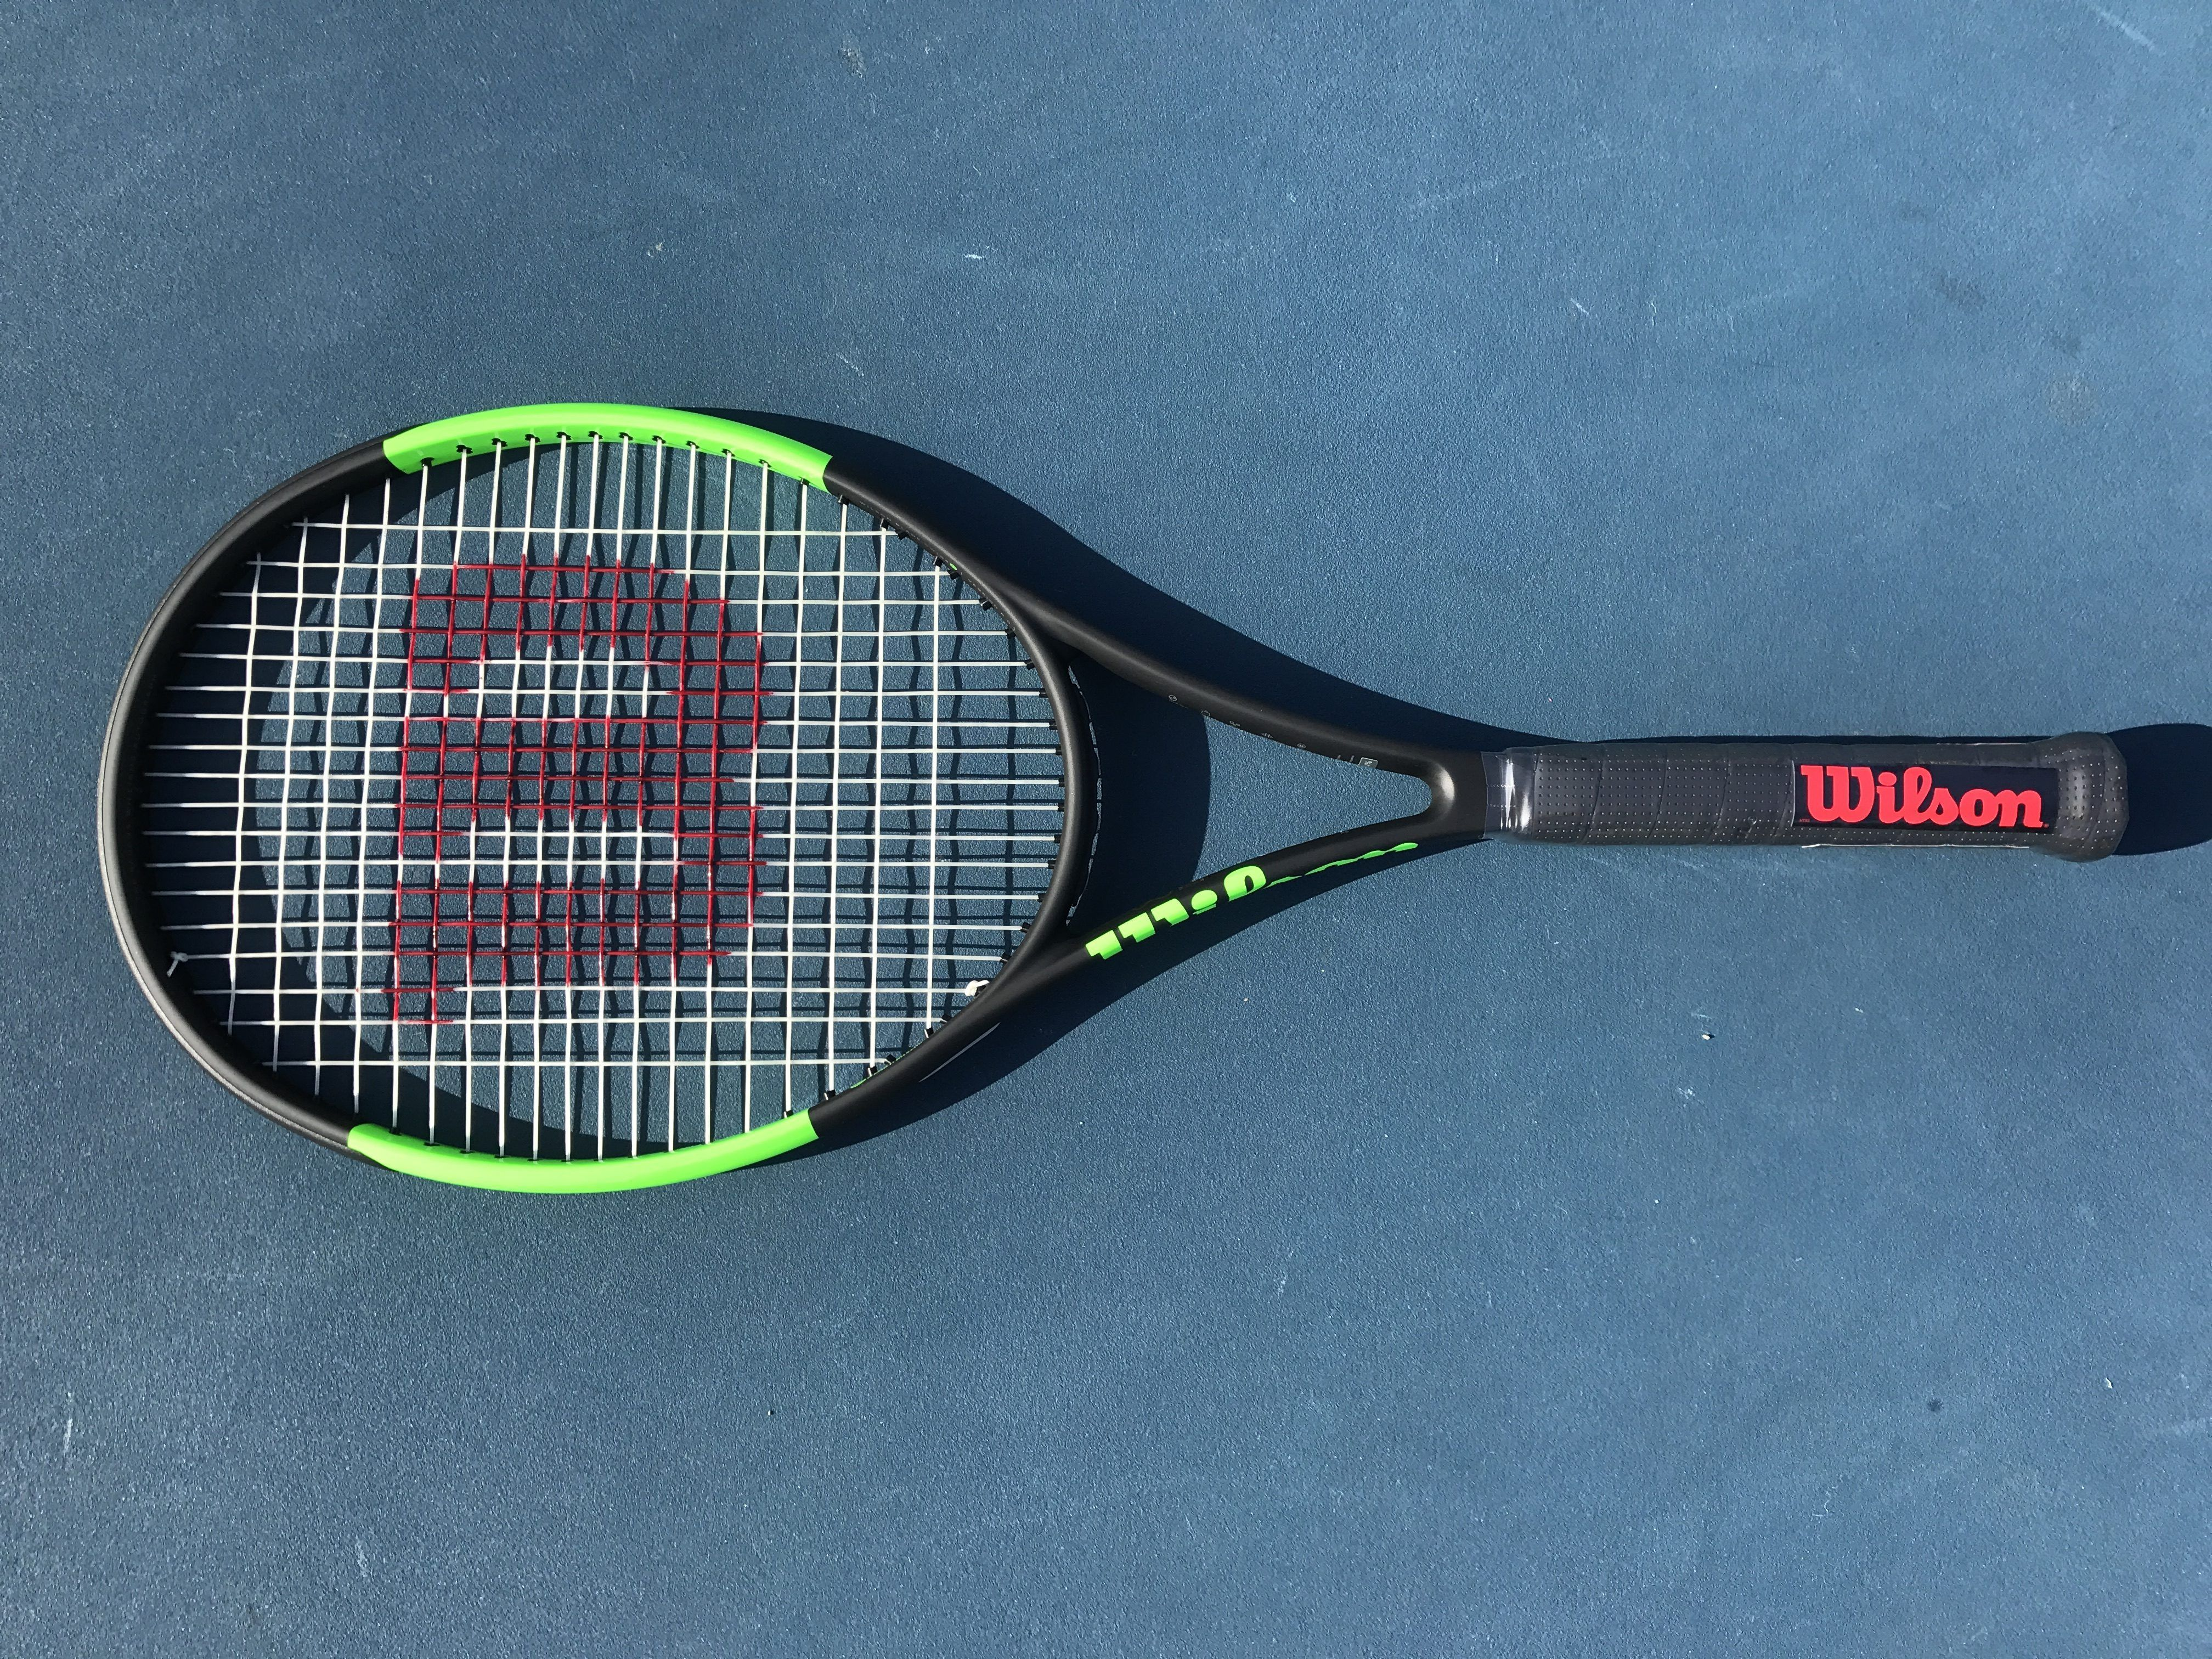 Reviews For The Best Tennis Racquets Tennis Racket Pro Tennis Racquets Tennis Racquet